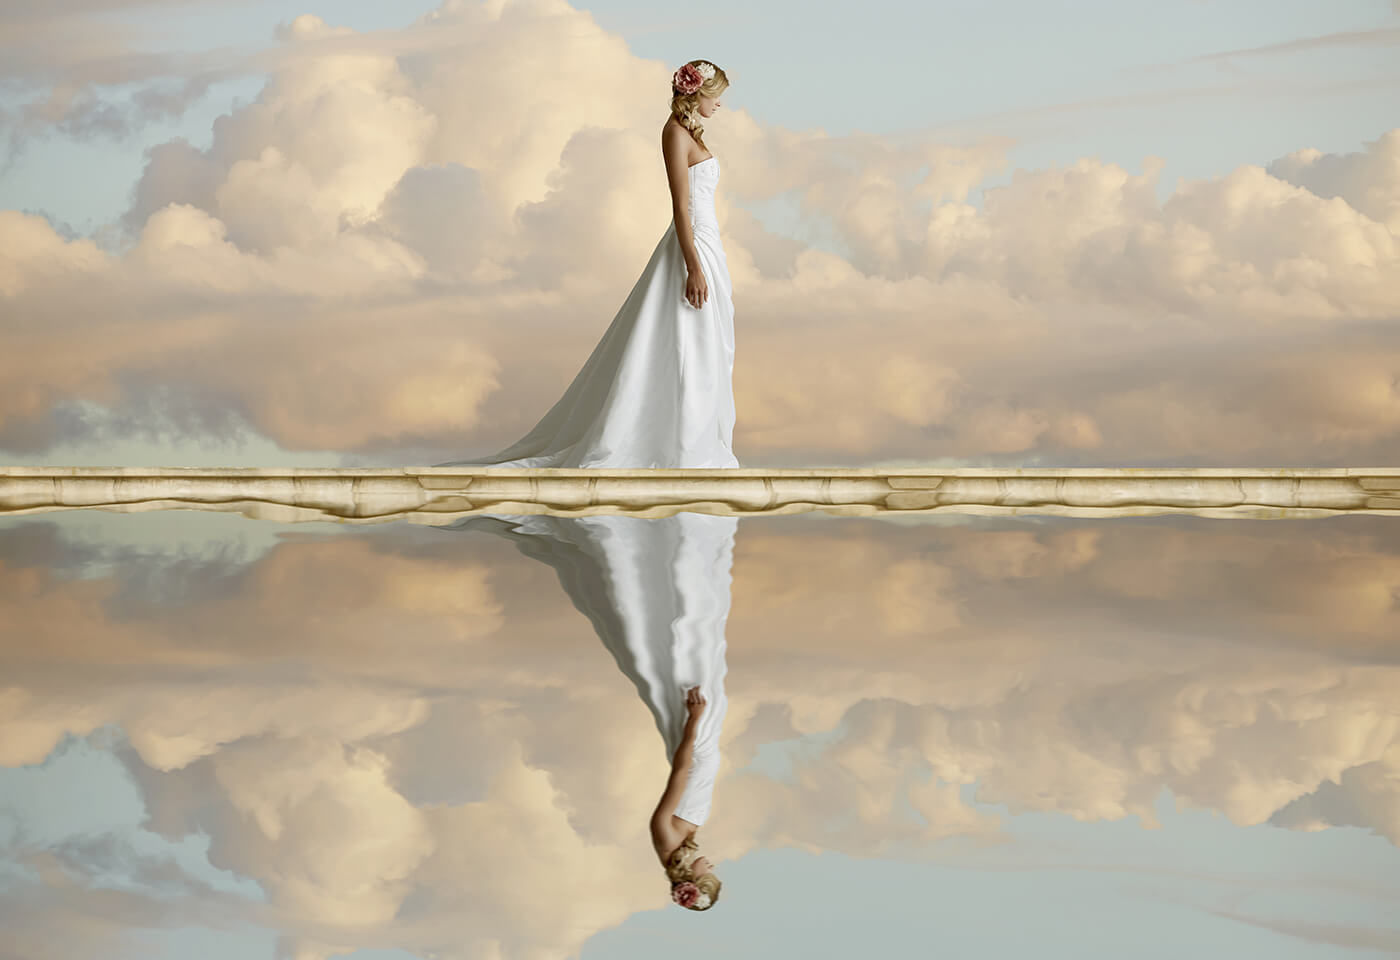 woman in wedding dress reflected in water